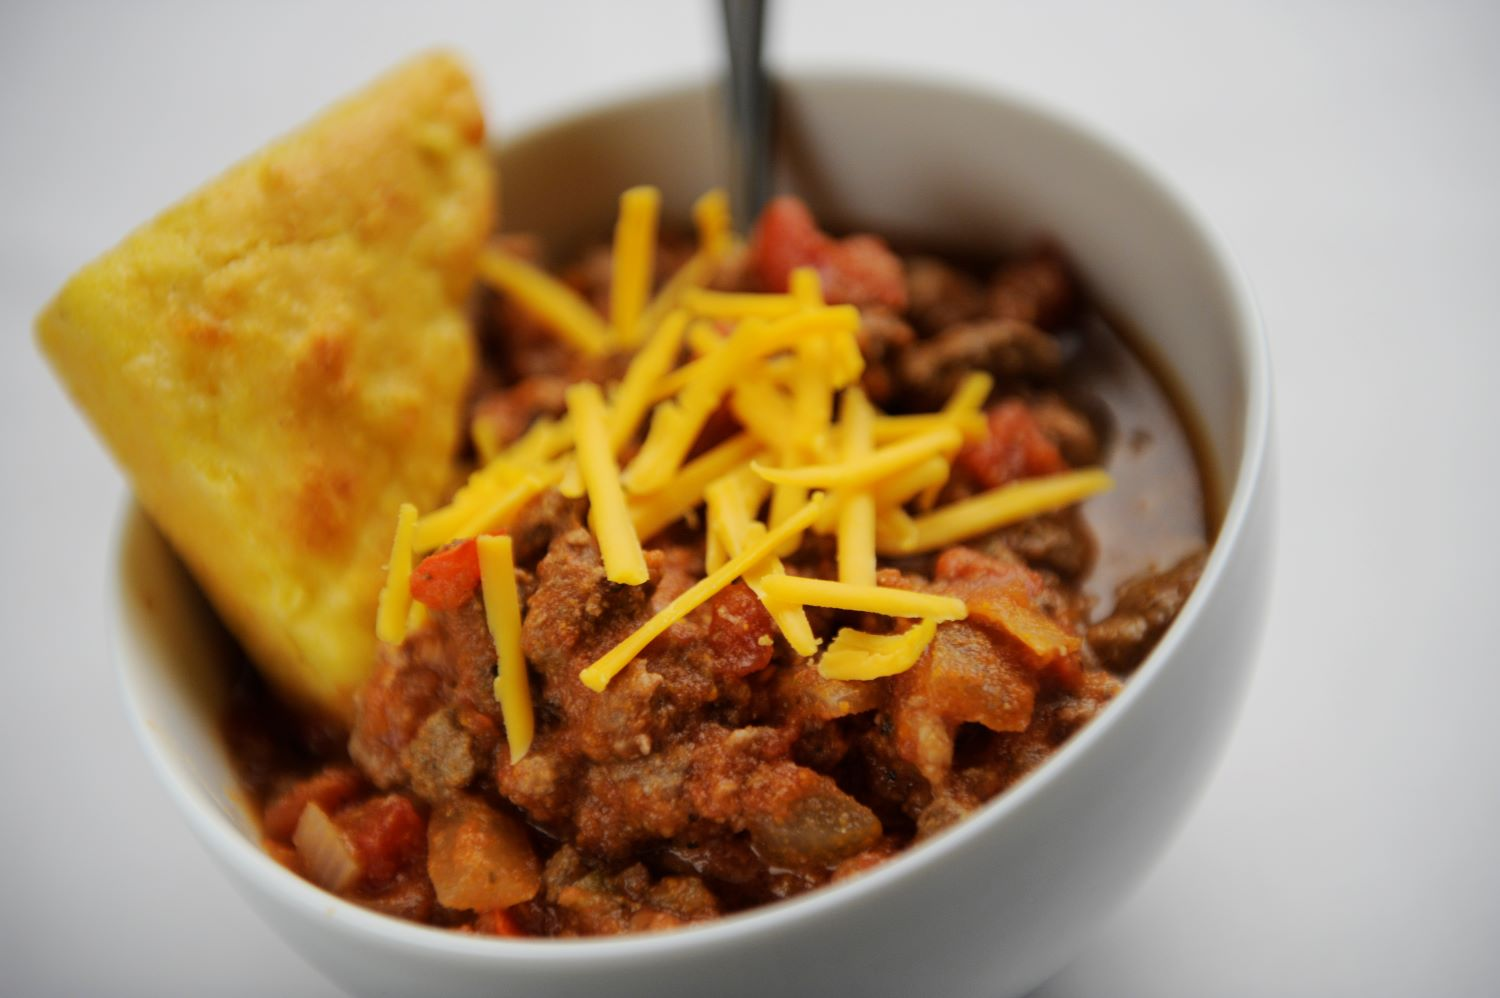 Chili and Cornbread for Super Bowl party spread